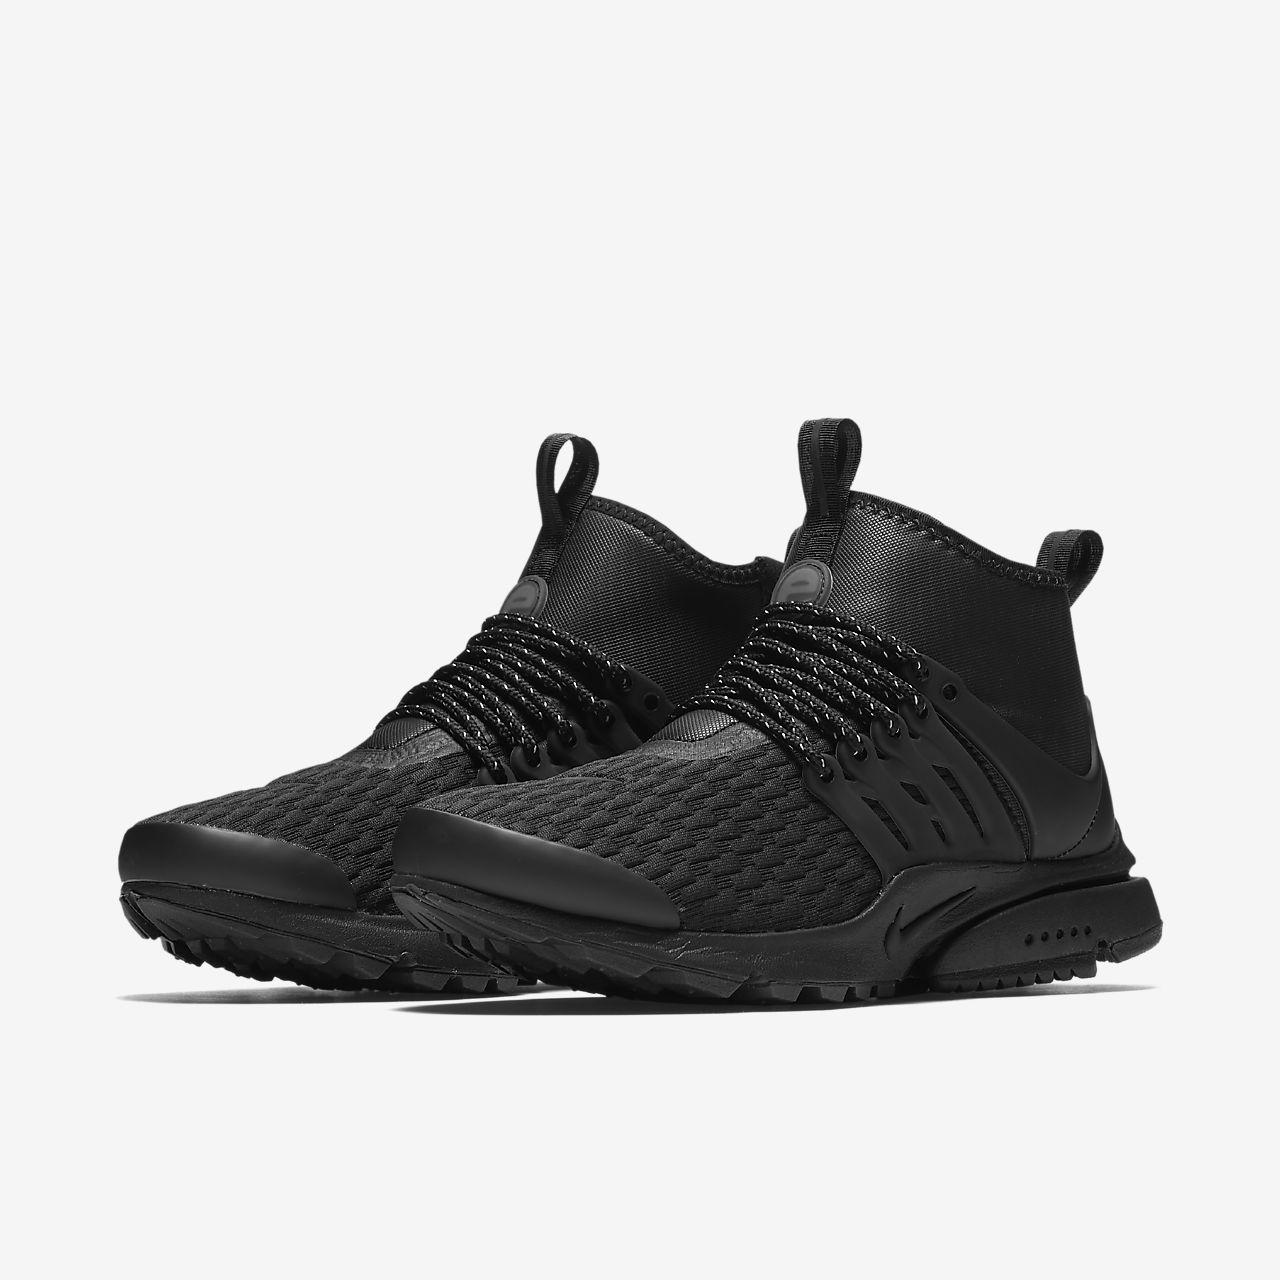 huge selection of fca75 c46ea Nike Air Presto Mid Utility Premium Women s Shoe